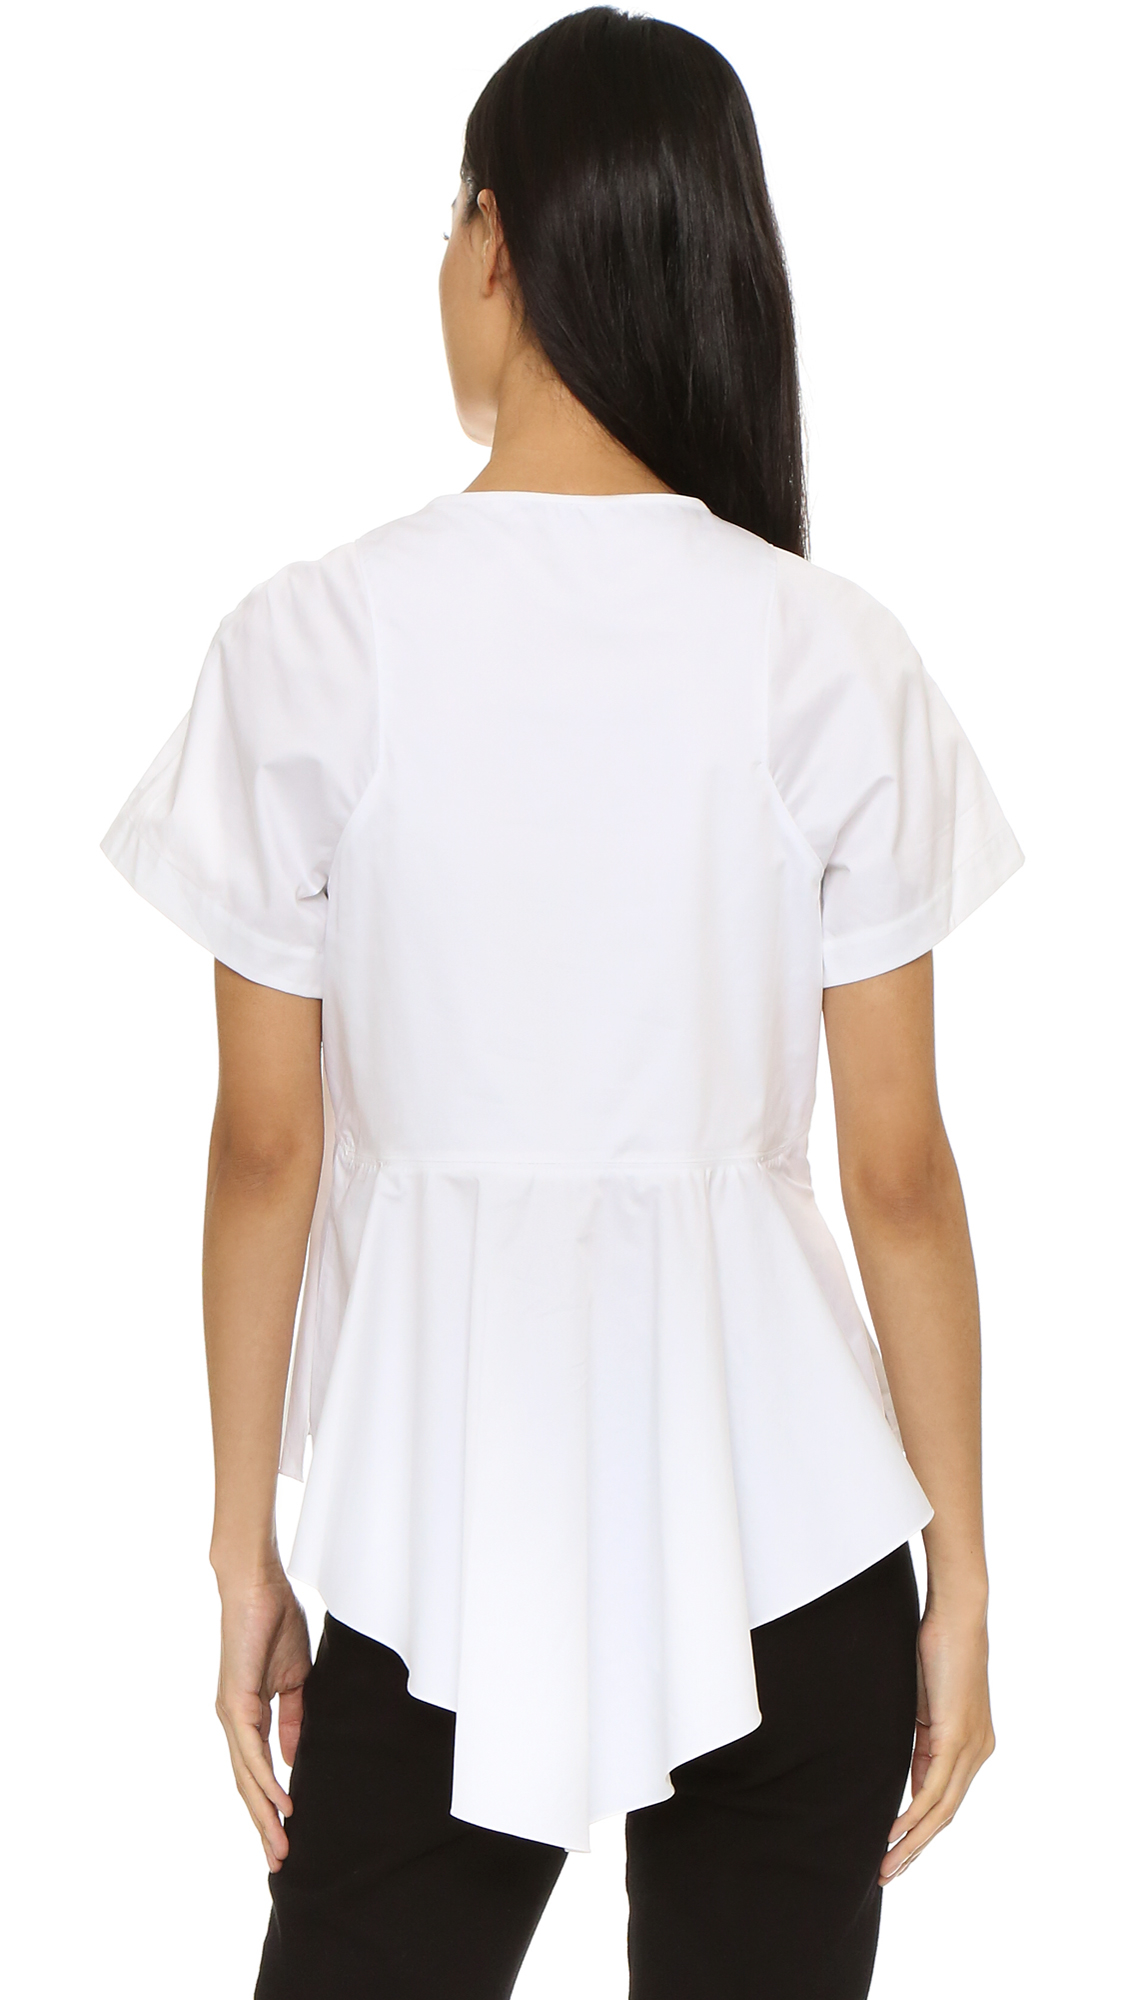 Lyst - Tibi Poplin Draped Top in White 7bcc01cac